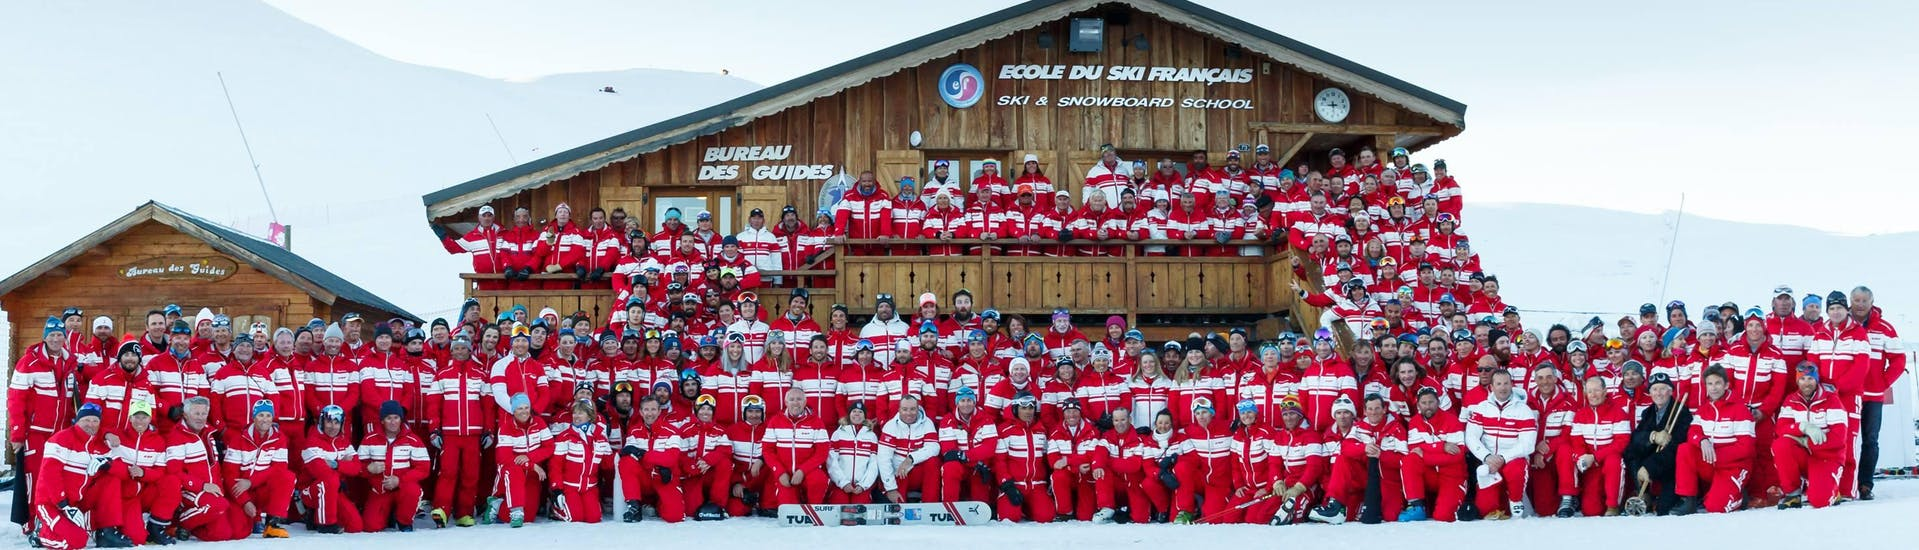 The entire team of the ski school ESF Alpe d'Huez is posing for a group picture in front of one of the chalet in the ski resort Alpe d'Huez.